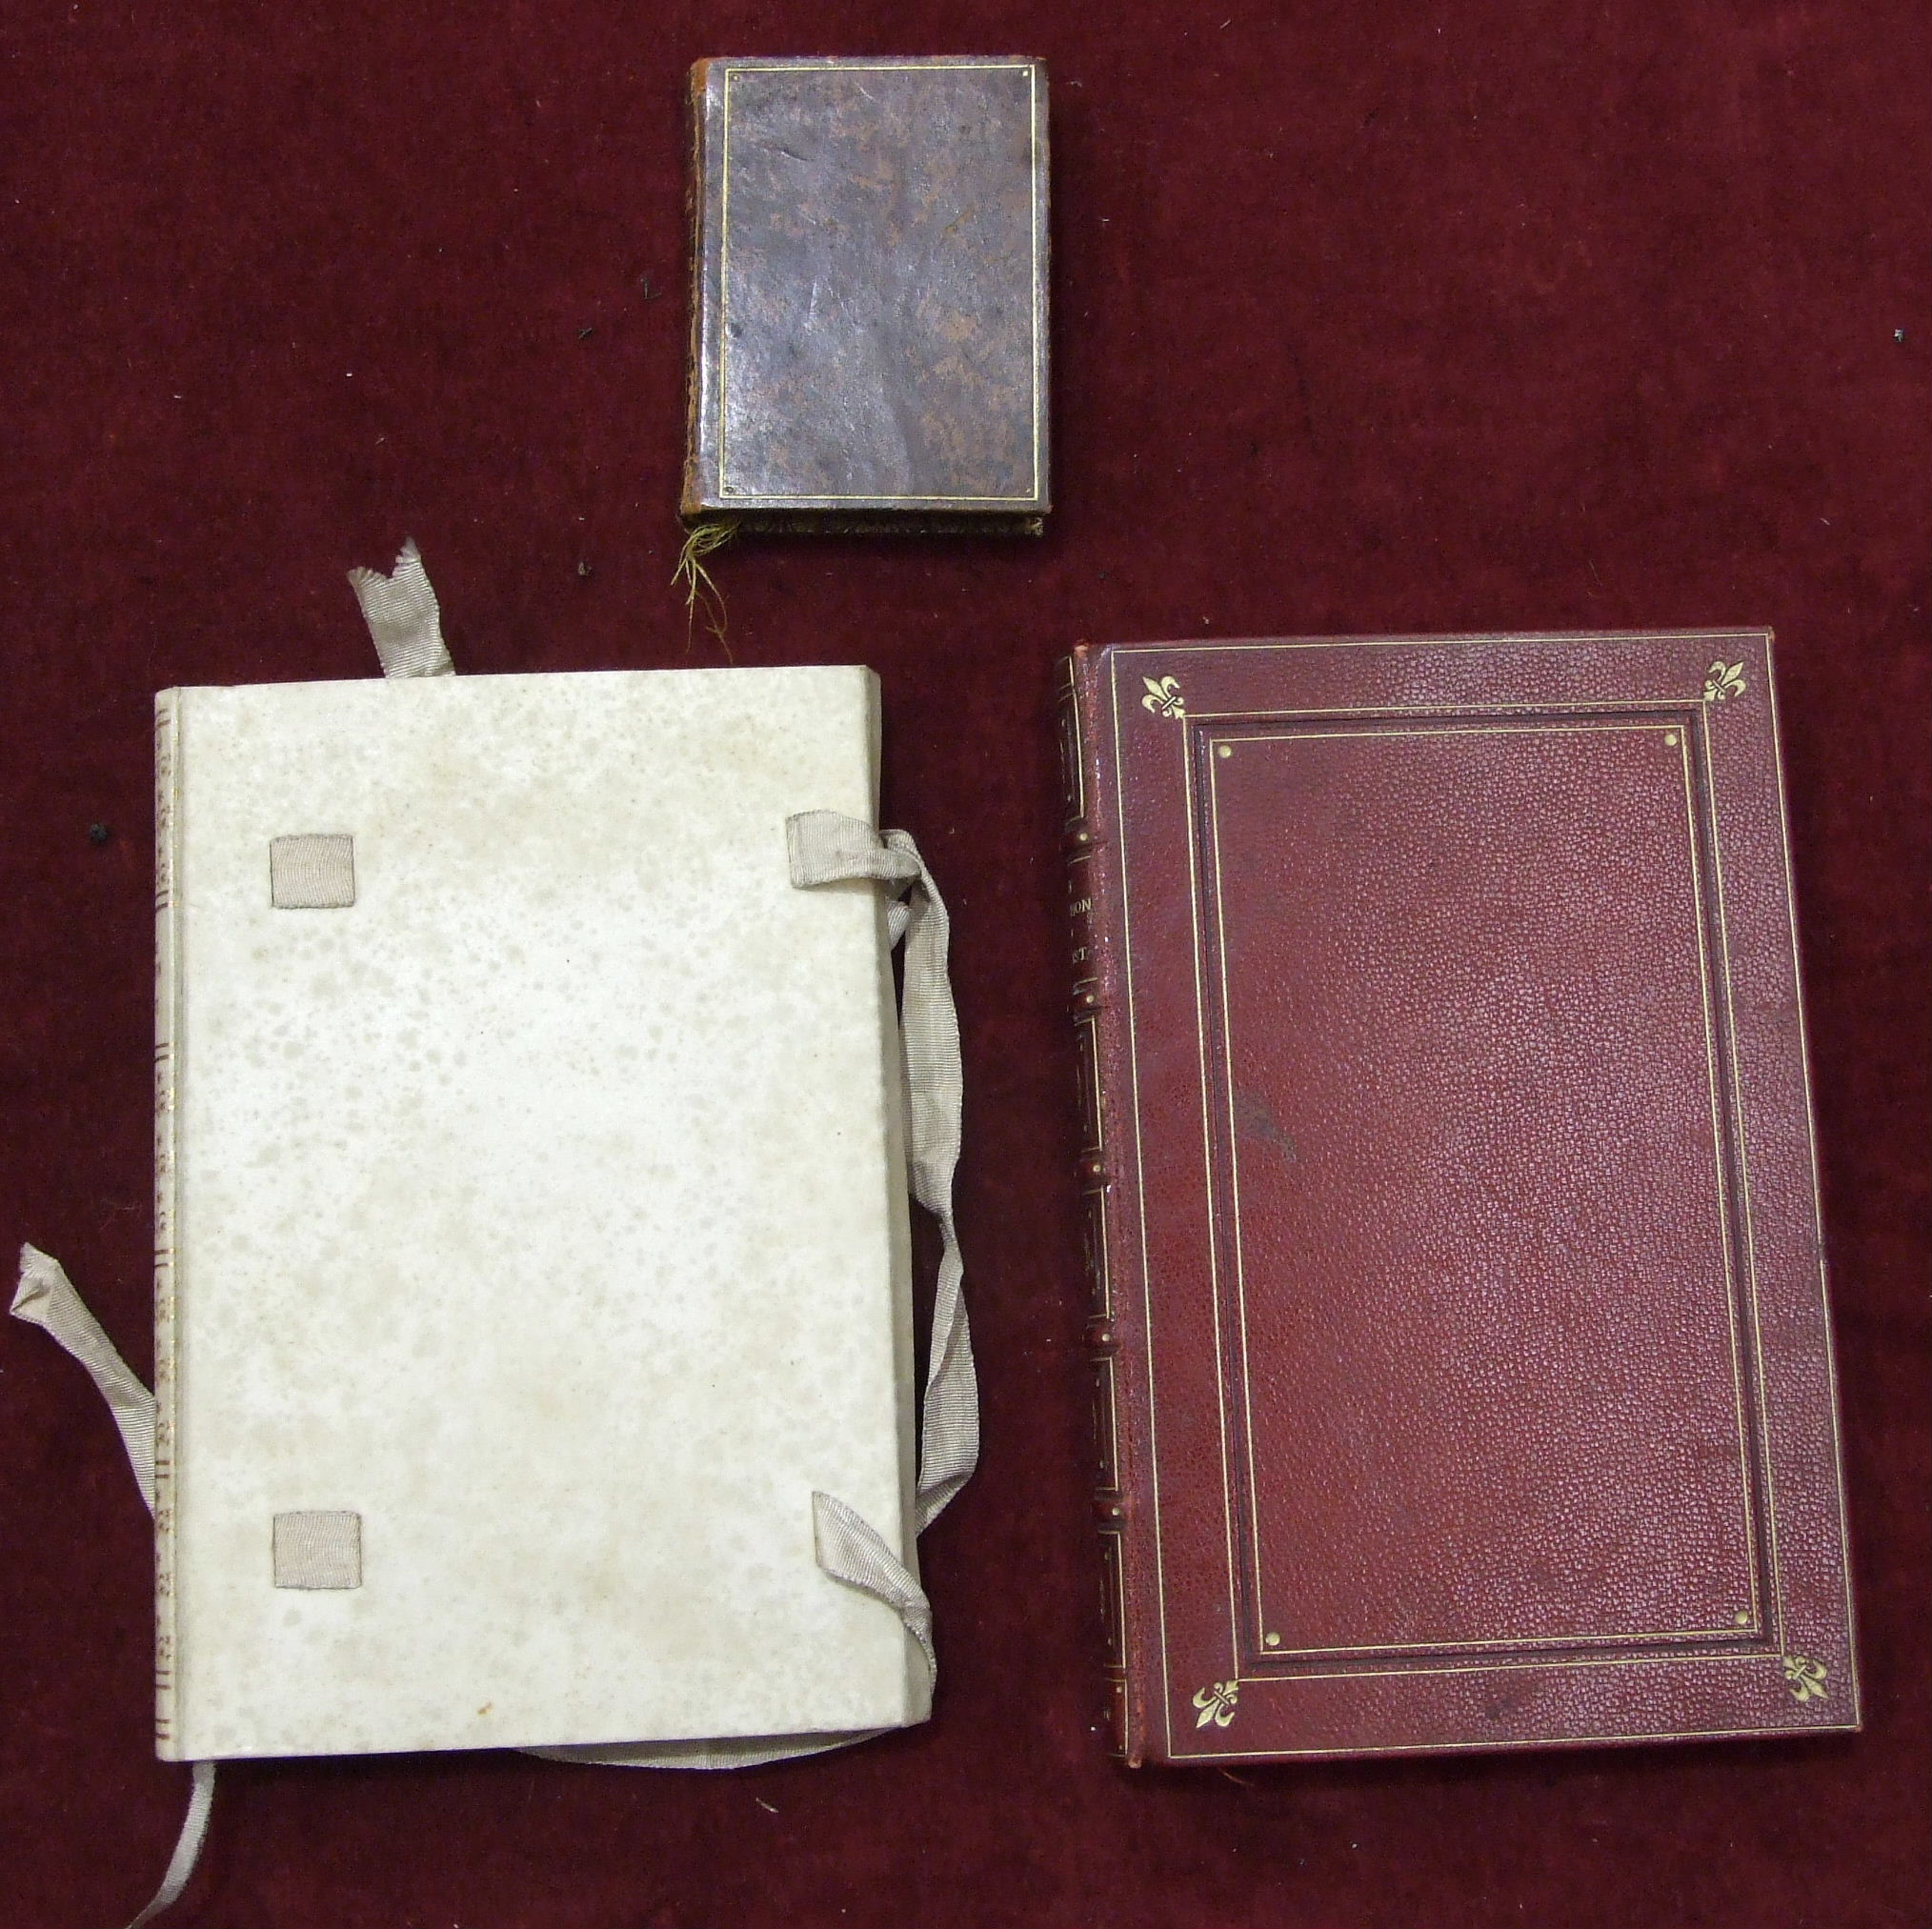 Lot 26 - Bindings, a small volume of 'Of The Imitation of Christ' by Thomas À Kempis, 1906, etc.